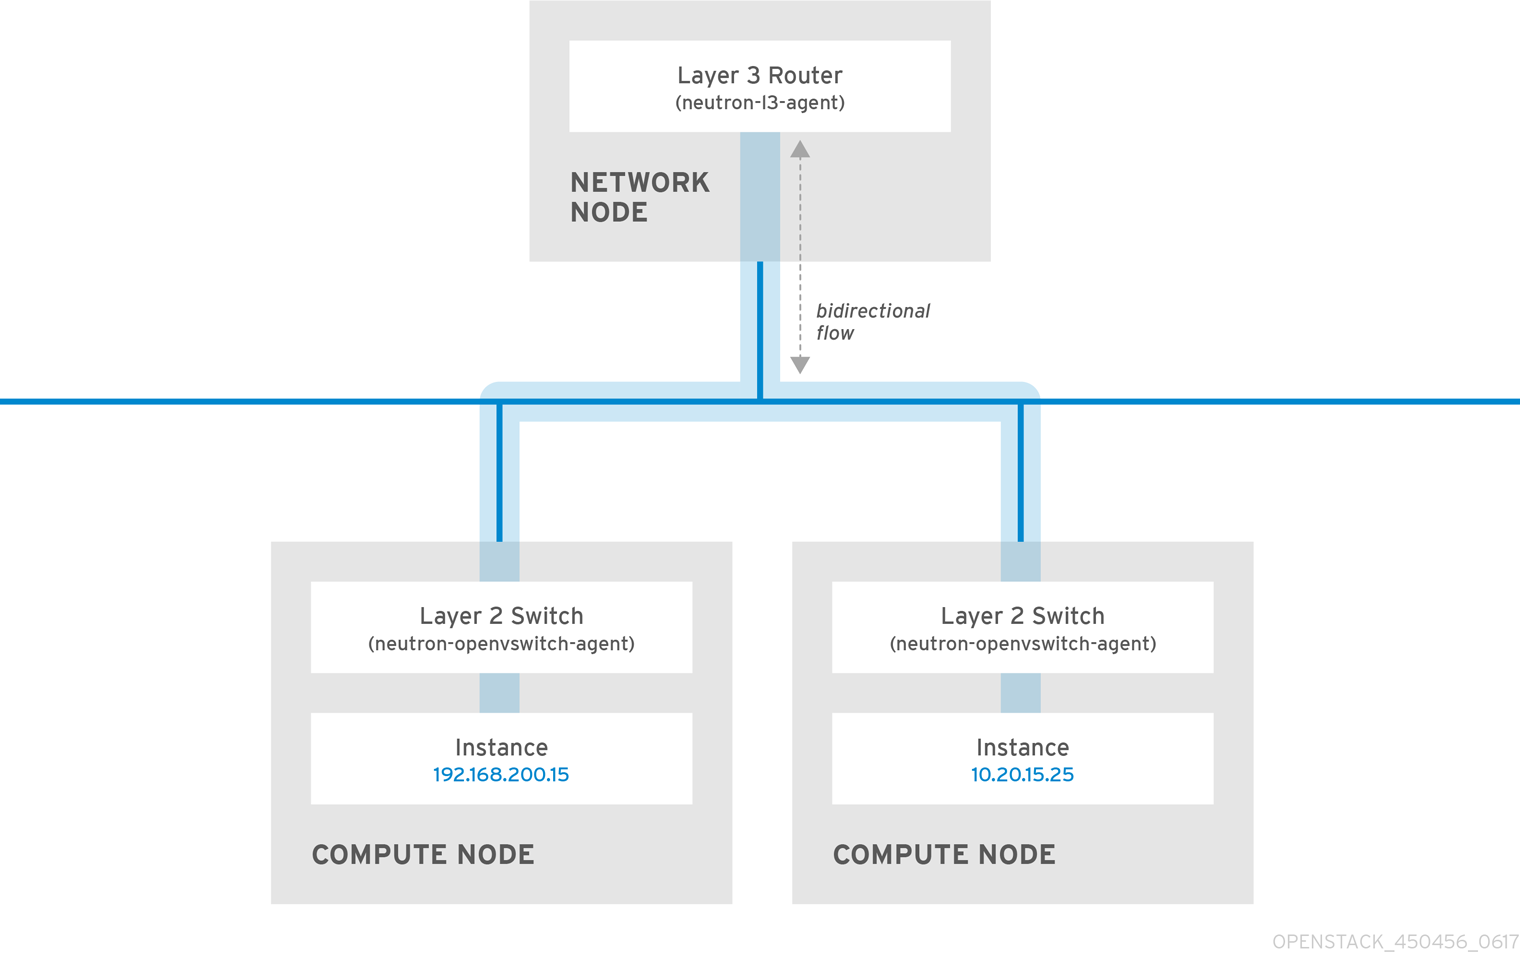 Red Hat Openstack Platform 10 Networking Guide Customer Portal Cisco Catalyst Layer 3 Fixed Configuration Switches Layers